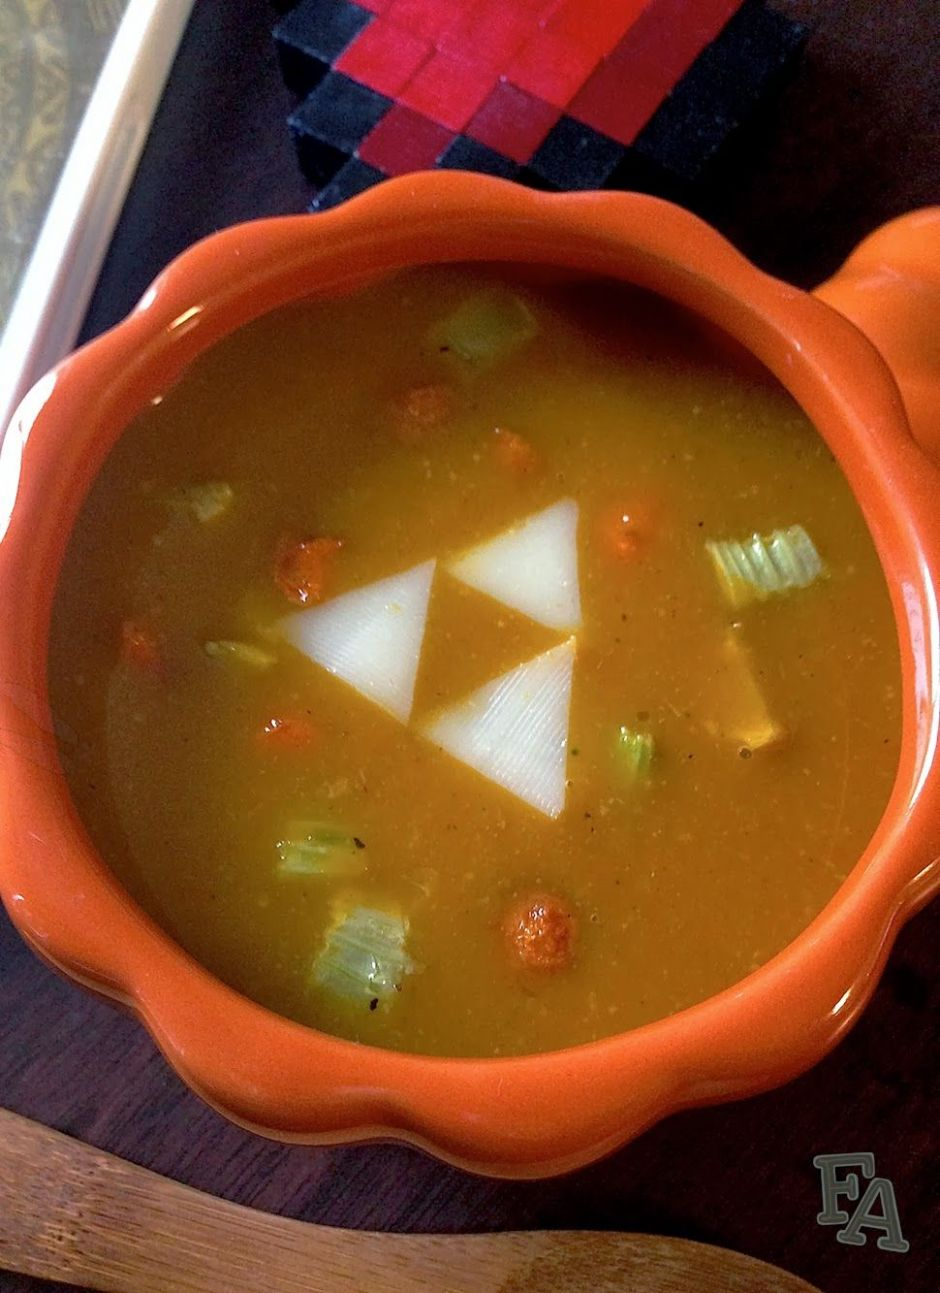 Pumm's Pumpkin Soup | Pumpkin soup, Legend of zelda, Skyrim food